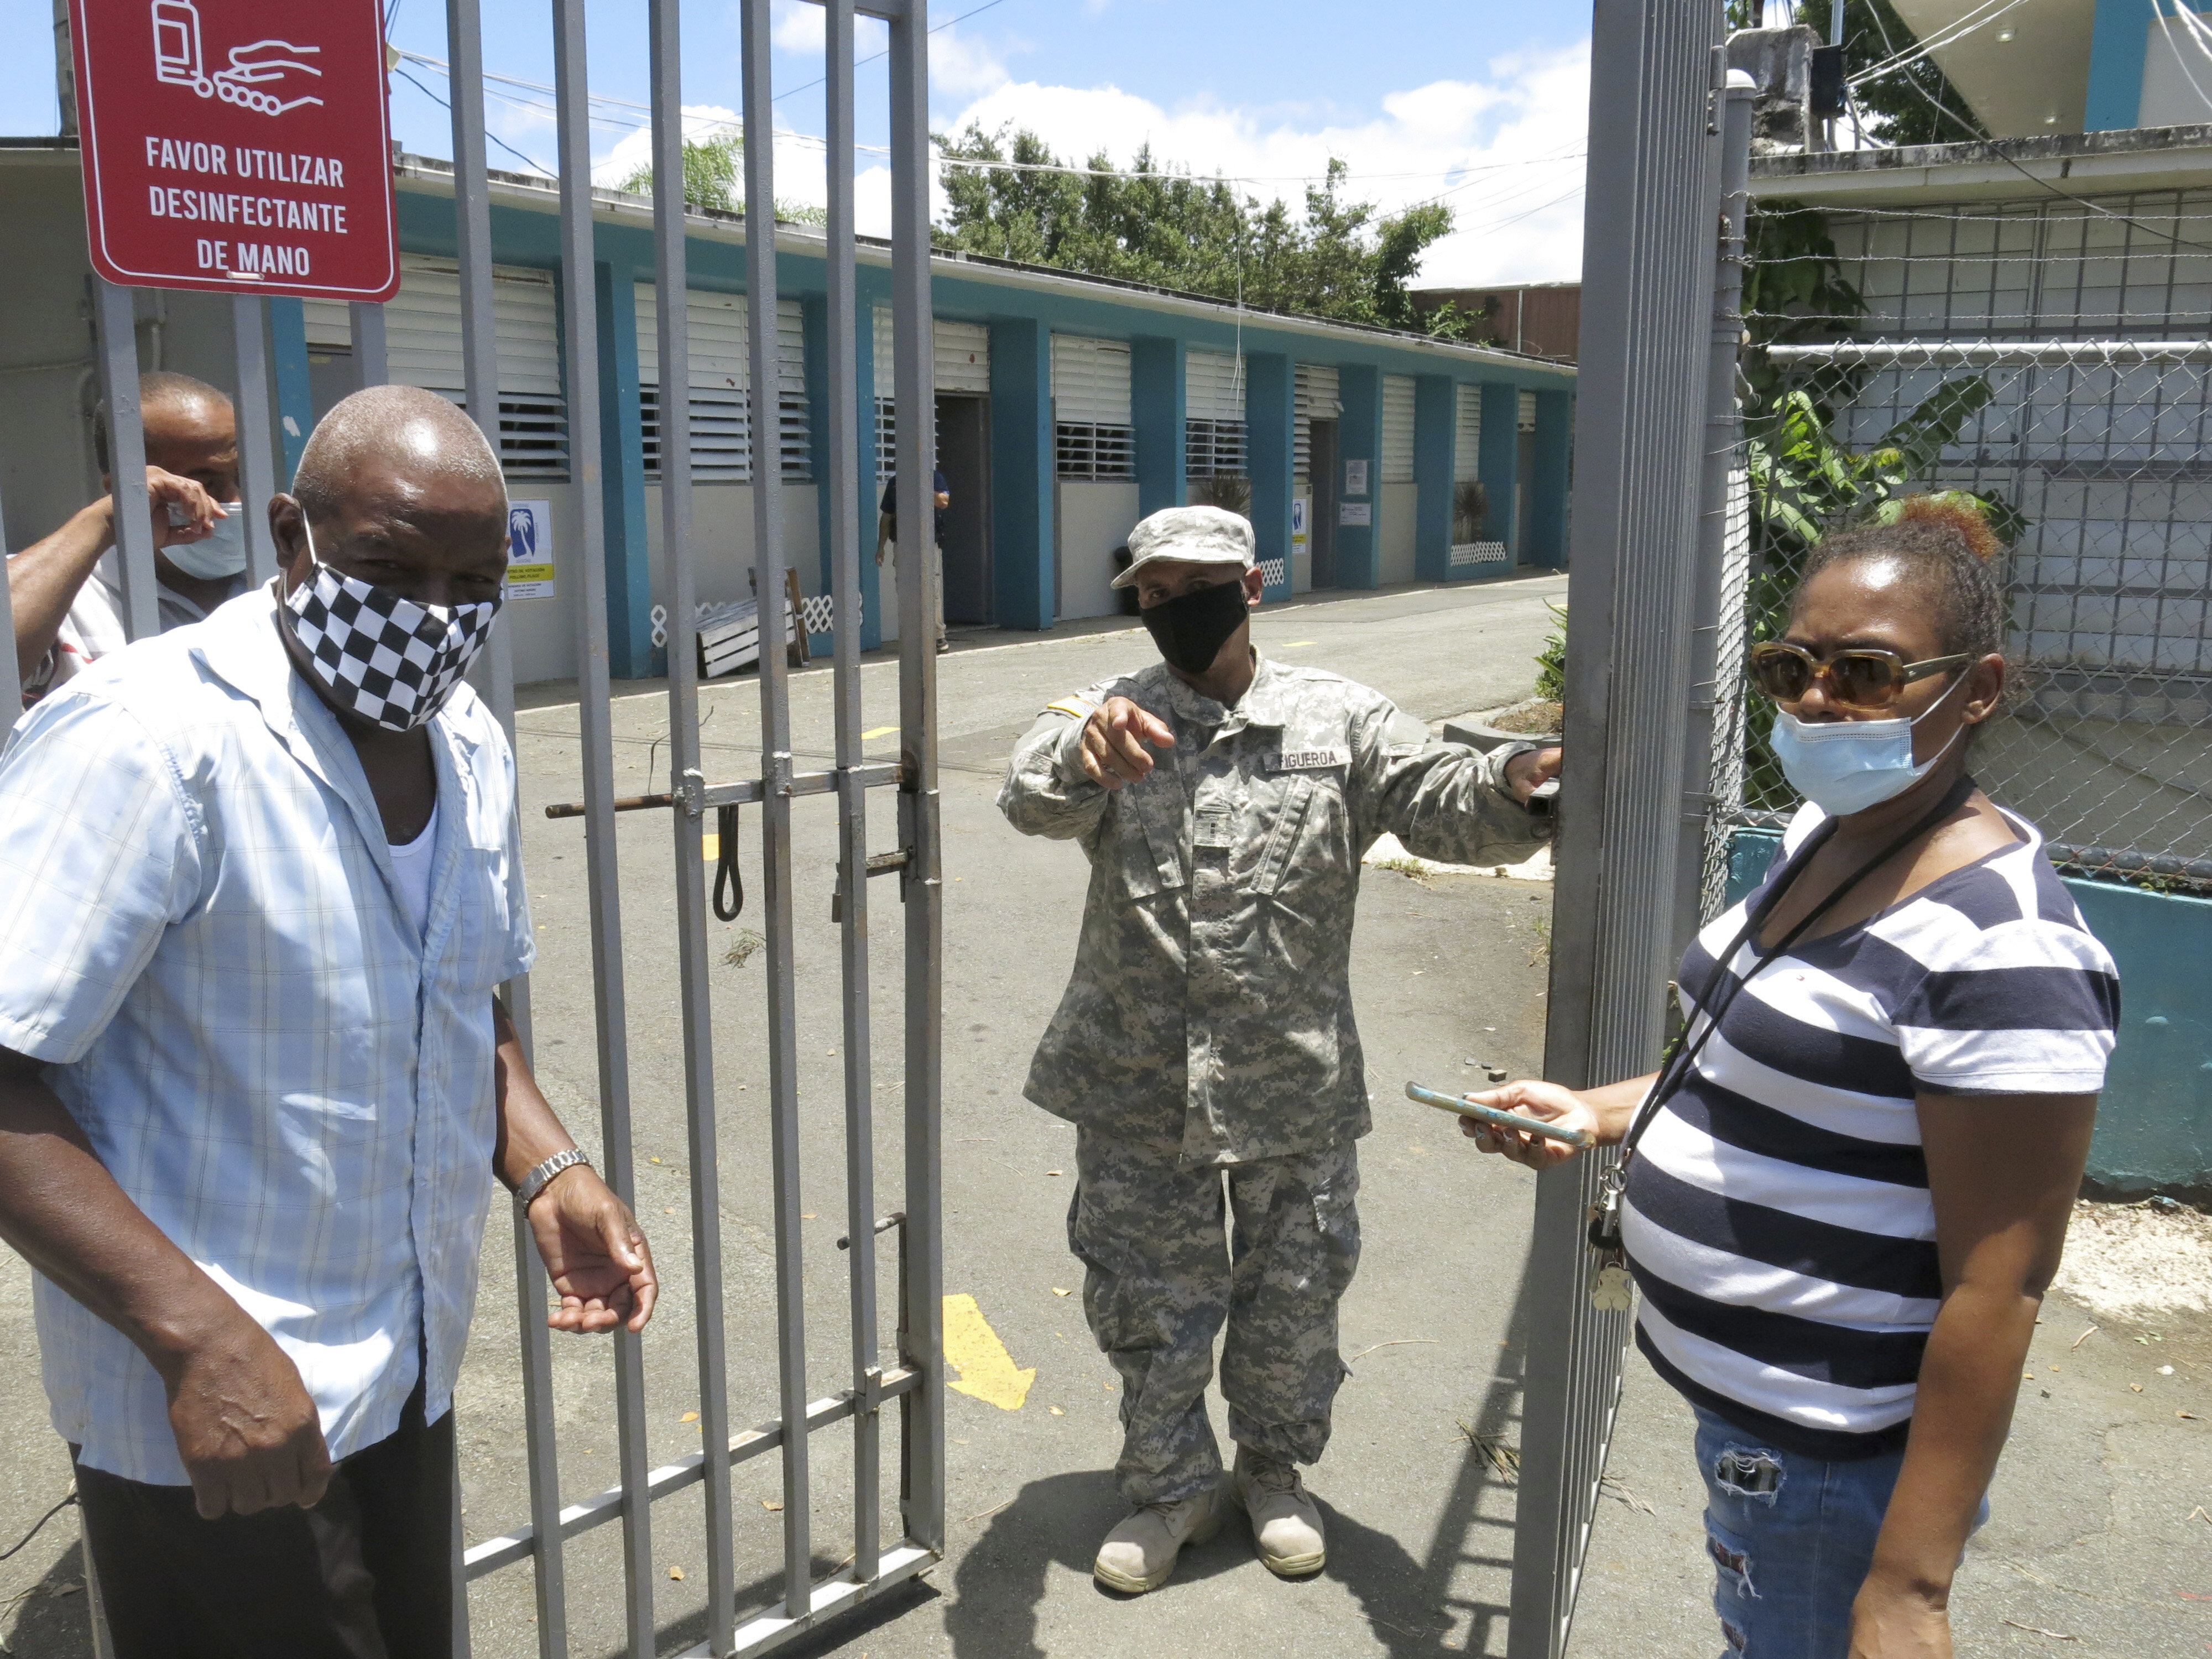 An official turns away two voters at a voting center lacking ballots in Carolina, Puerto Rico, Aug. 9, 2020.